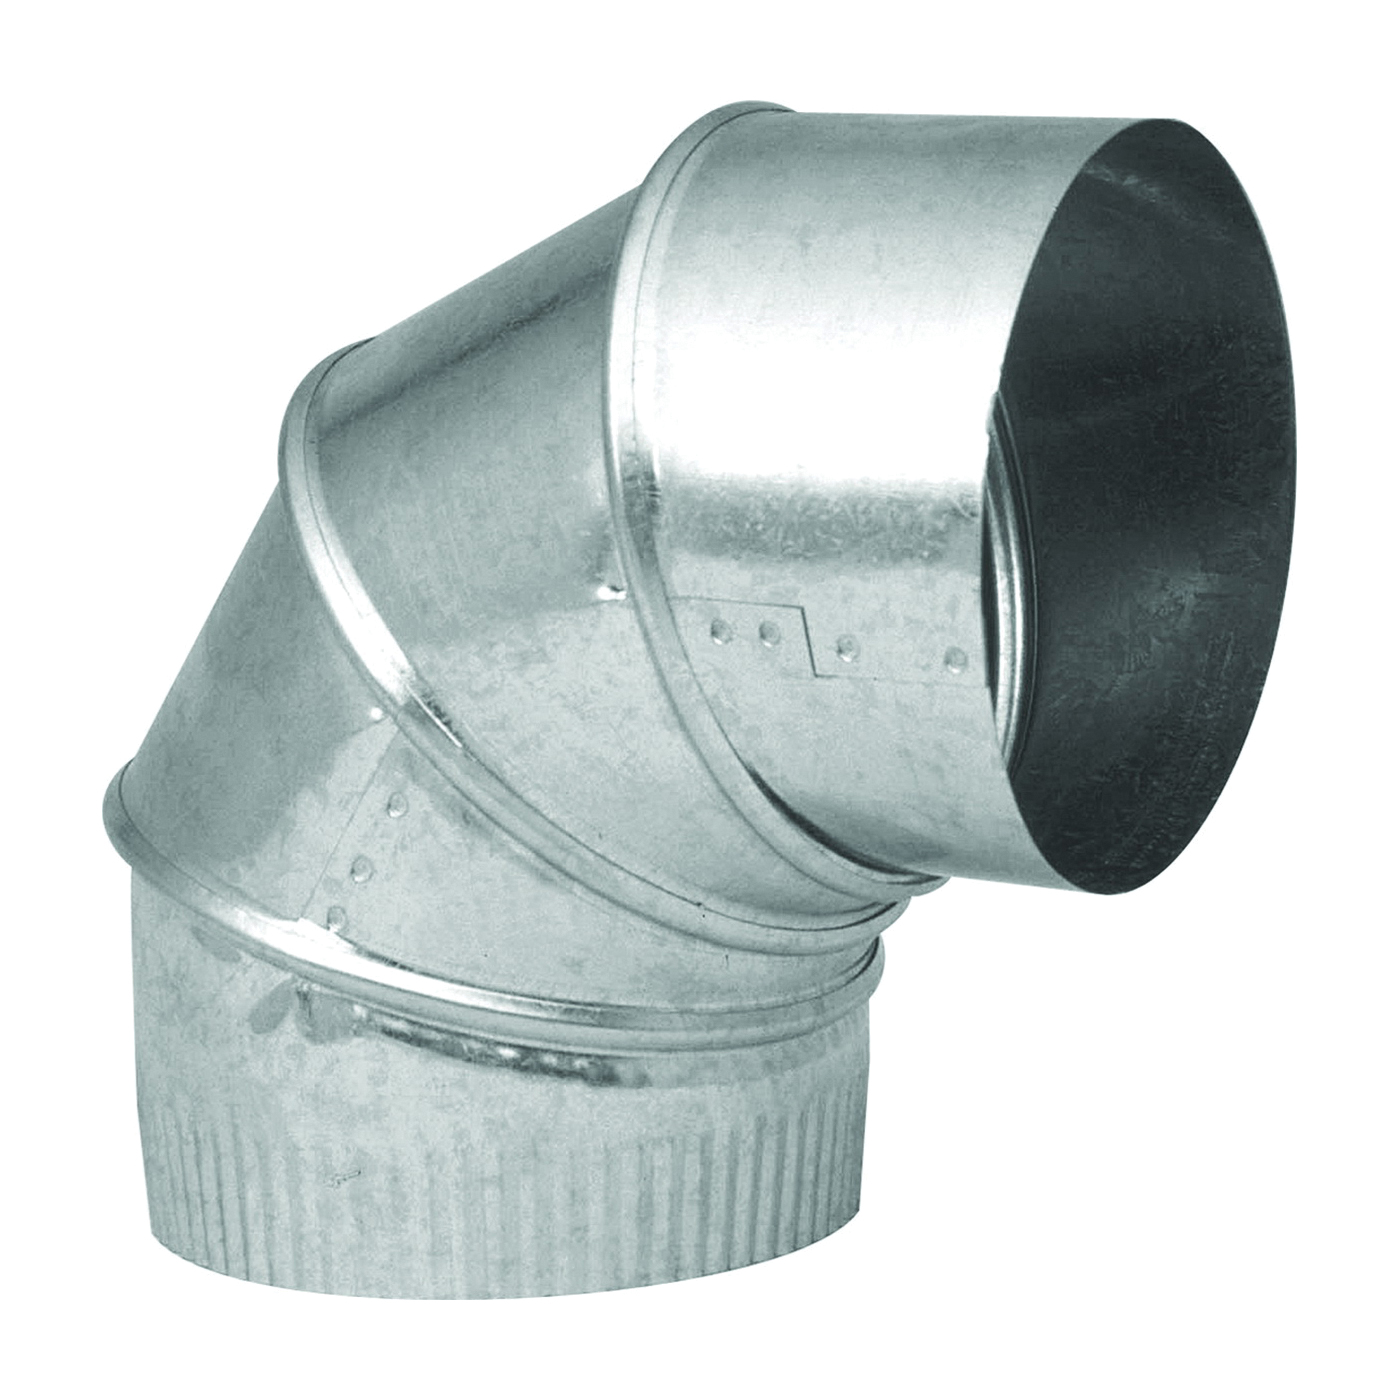 Picture of Imperial GV0298-C Stove Pipe Elbow, 7 in Connection, 24 Gauge, Galvanized